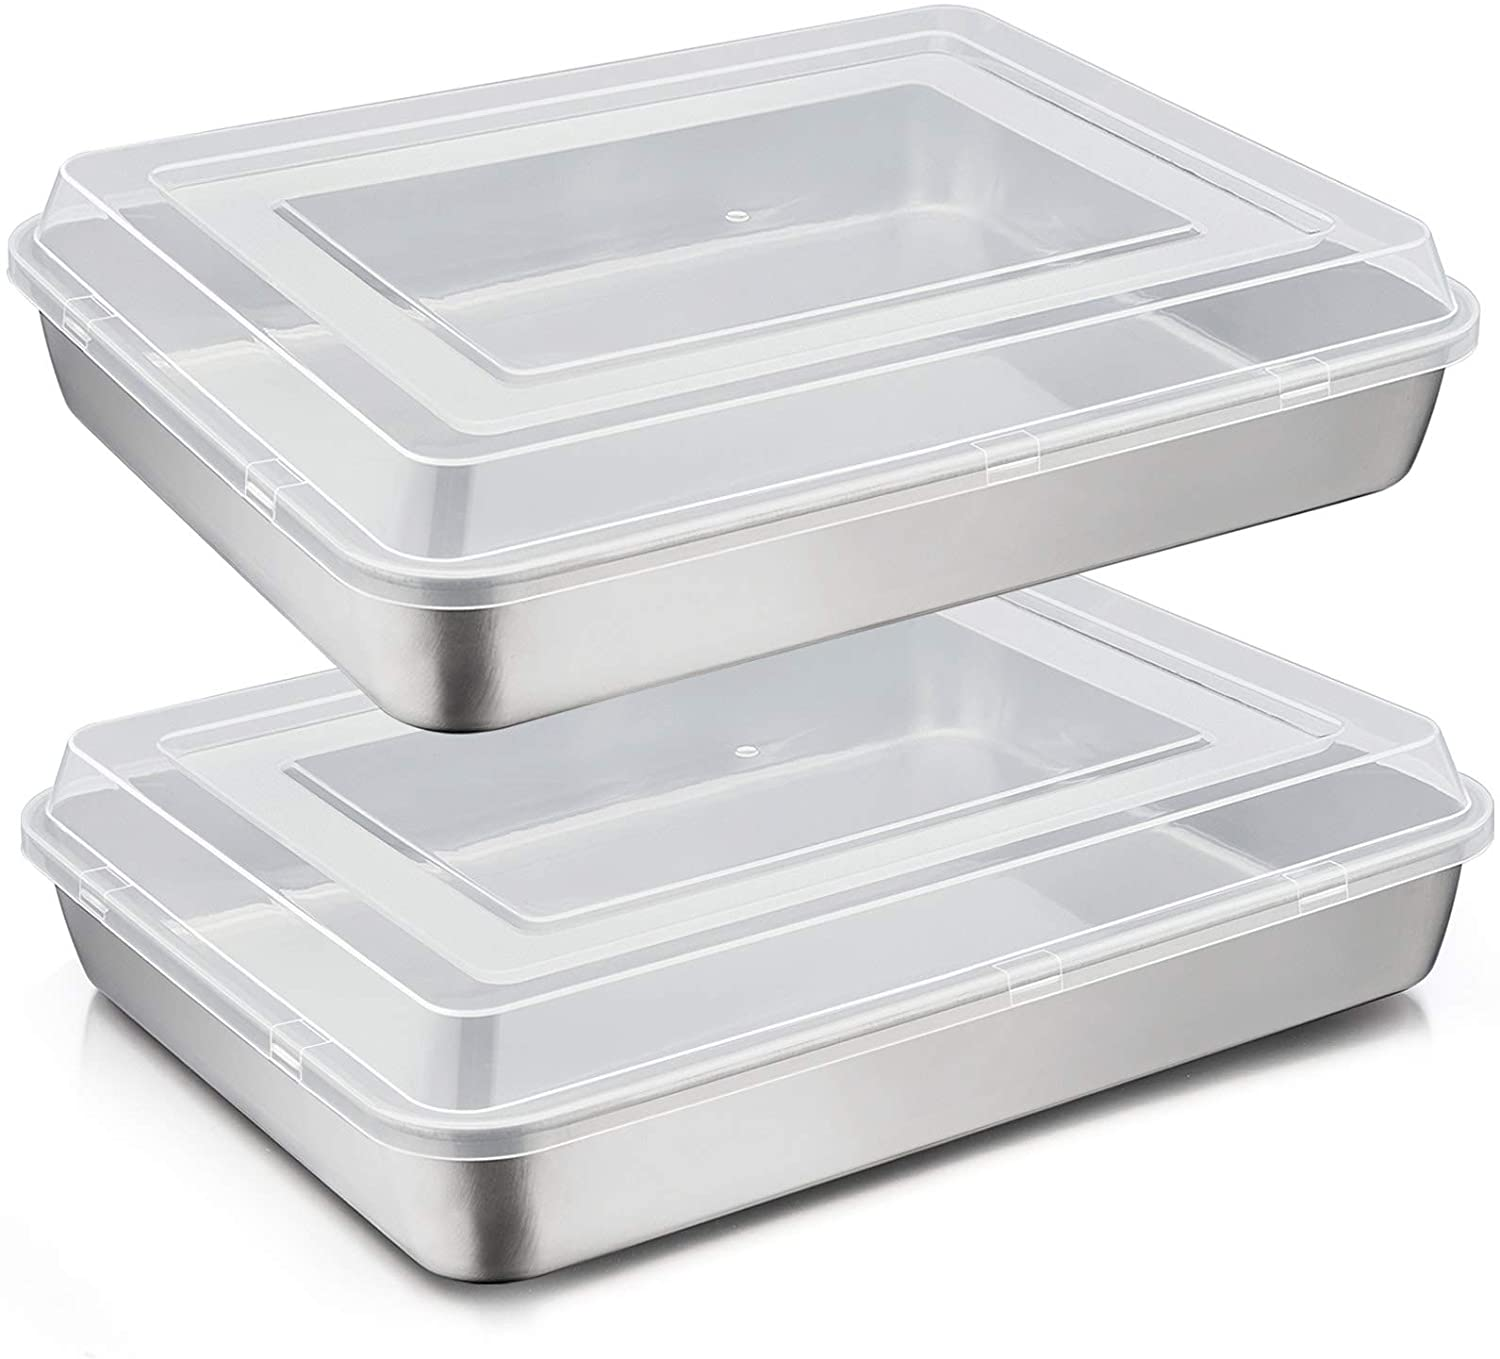 TeamFar Lasagna Pan, 12⅖'' x 9¾'' x 2'' Stainless Steel Rectangular Casserole Cake Brownie Baking Pan with Lid, Non-Toxic & Heavy Duty, Brush Surface & Deep Side, Dishwasher Safe & Easy Clean, 4 PCS